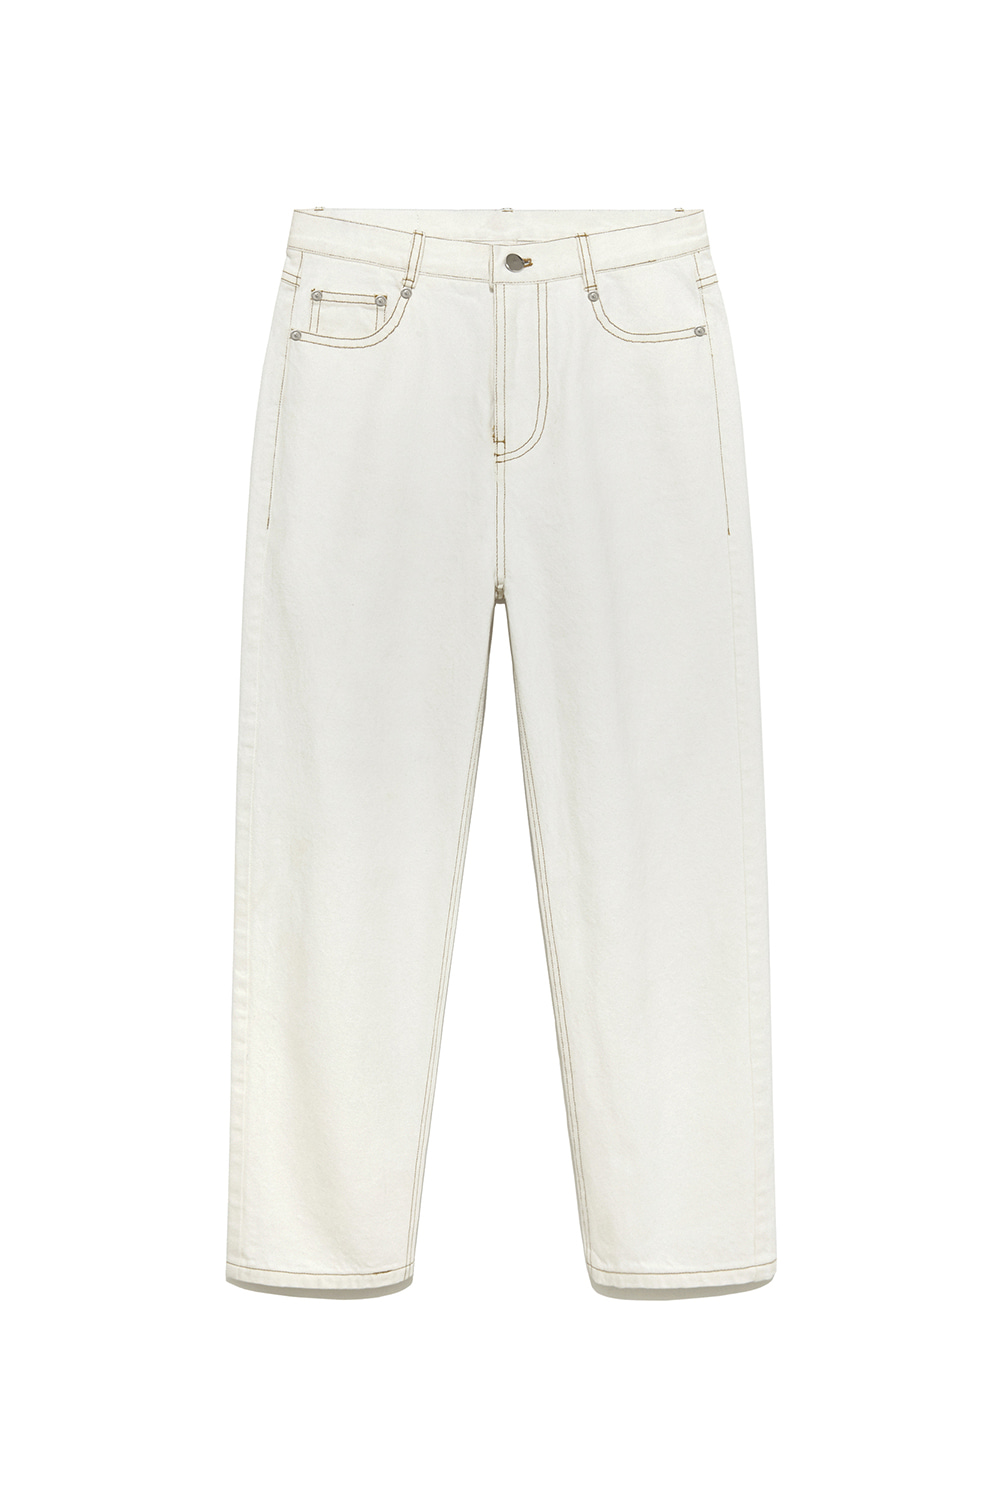 Highwaist Denim Pants Women [White]